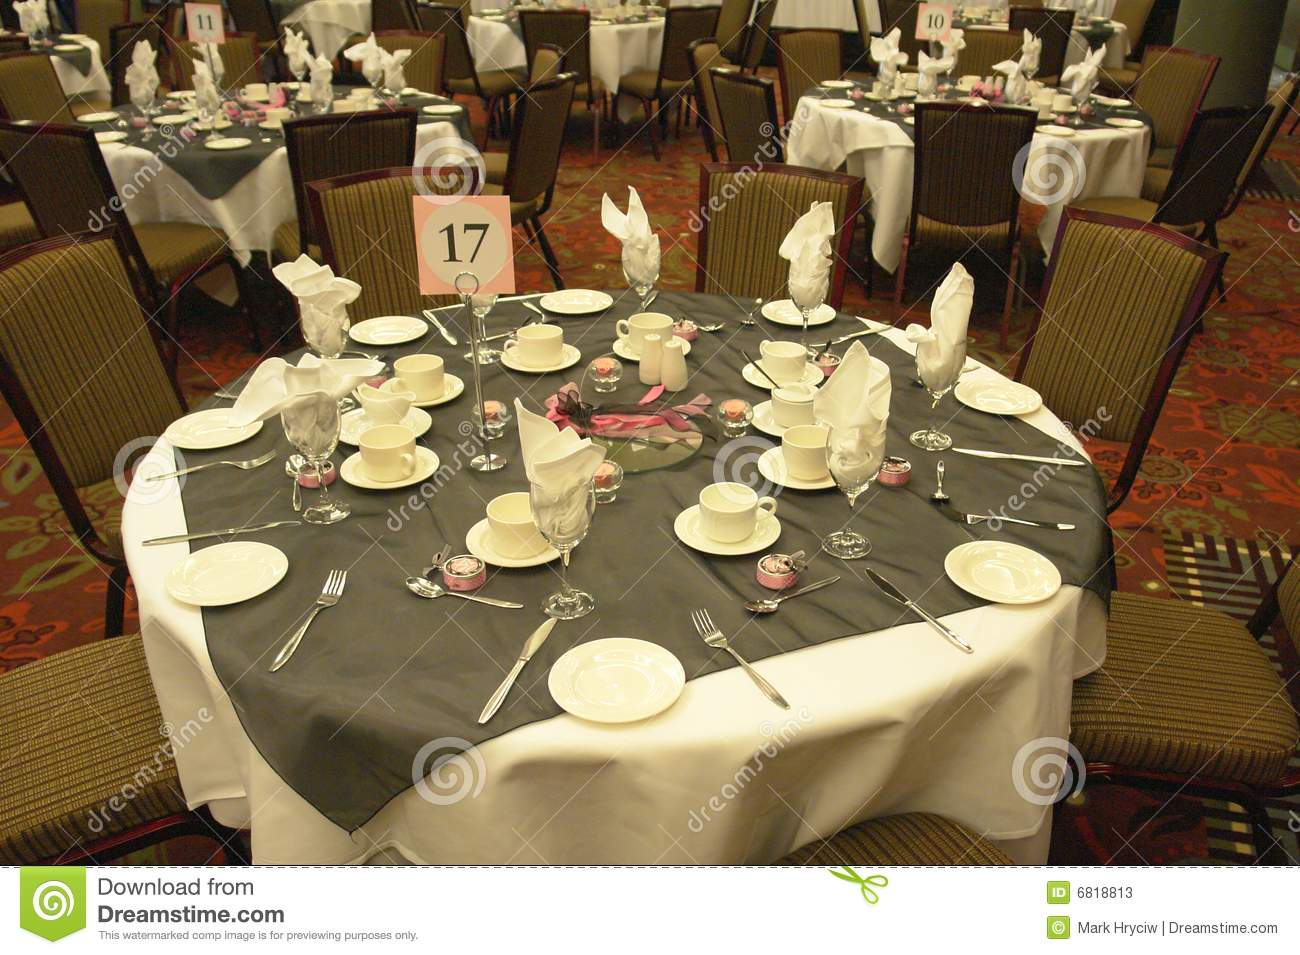 Stock Photos Wedding Table Settings Image6818813 on banquet chairs for less